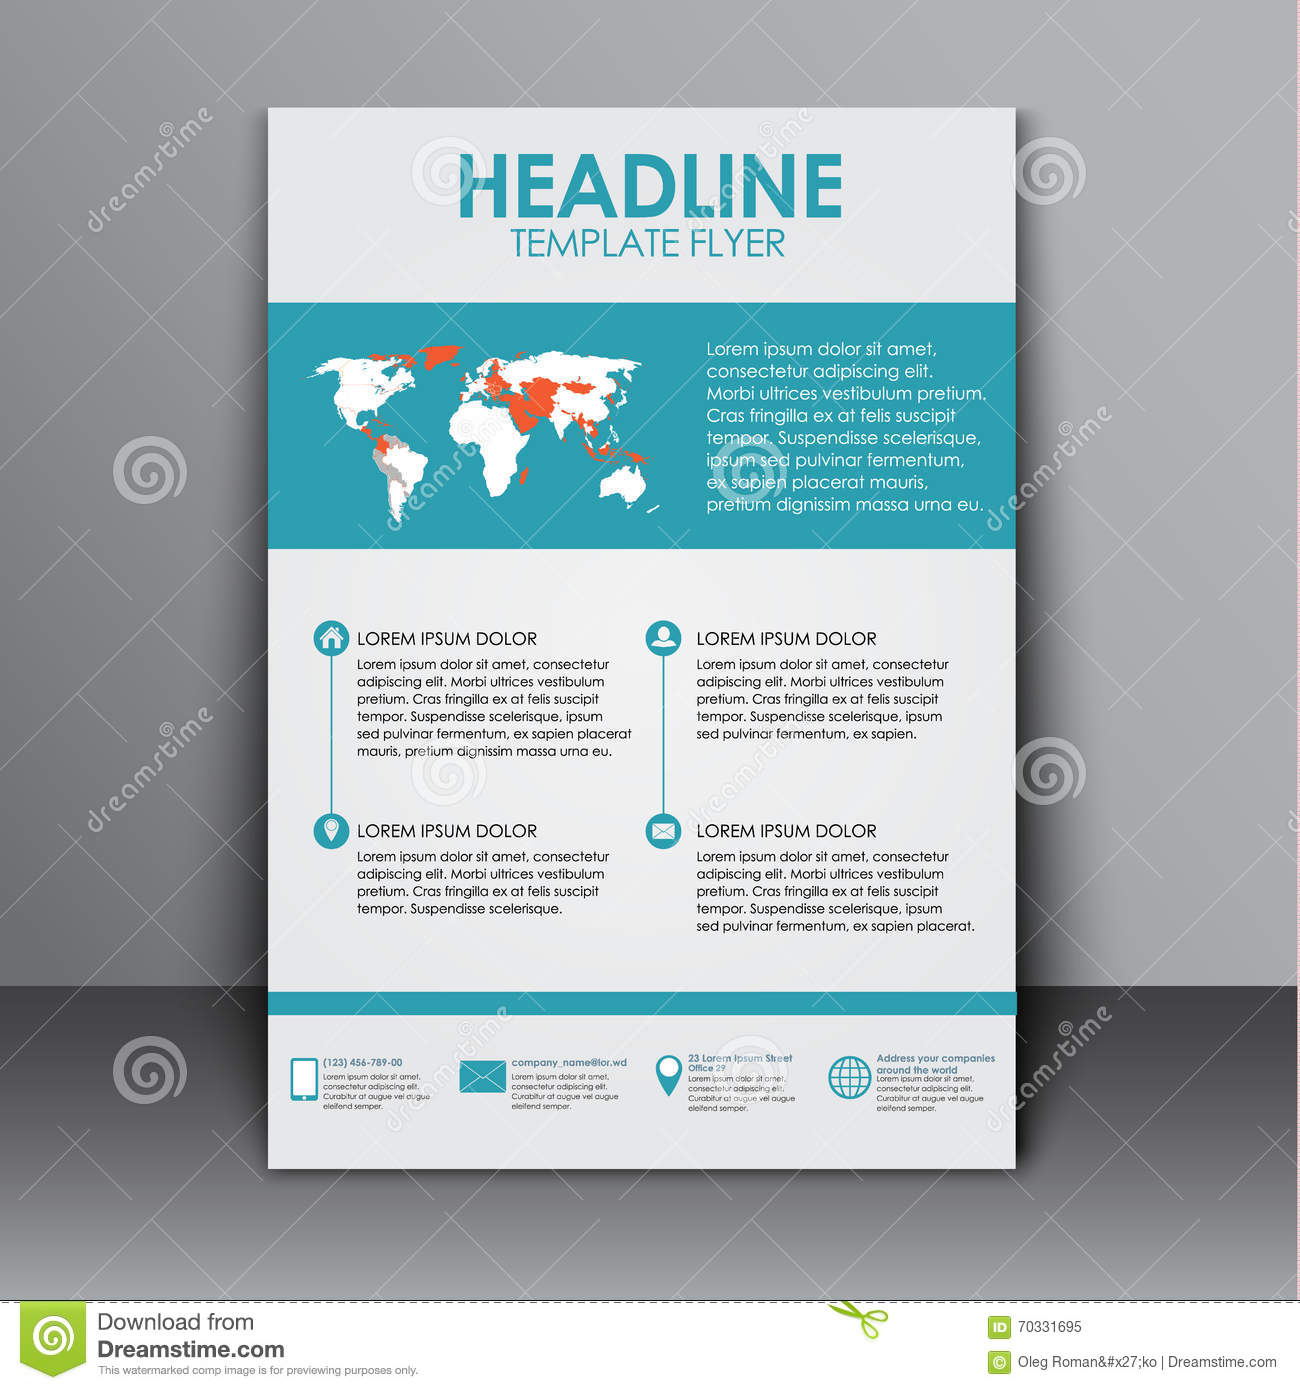 Template flyer with information for advertising stock for Informational brochure templates free